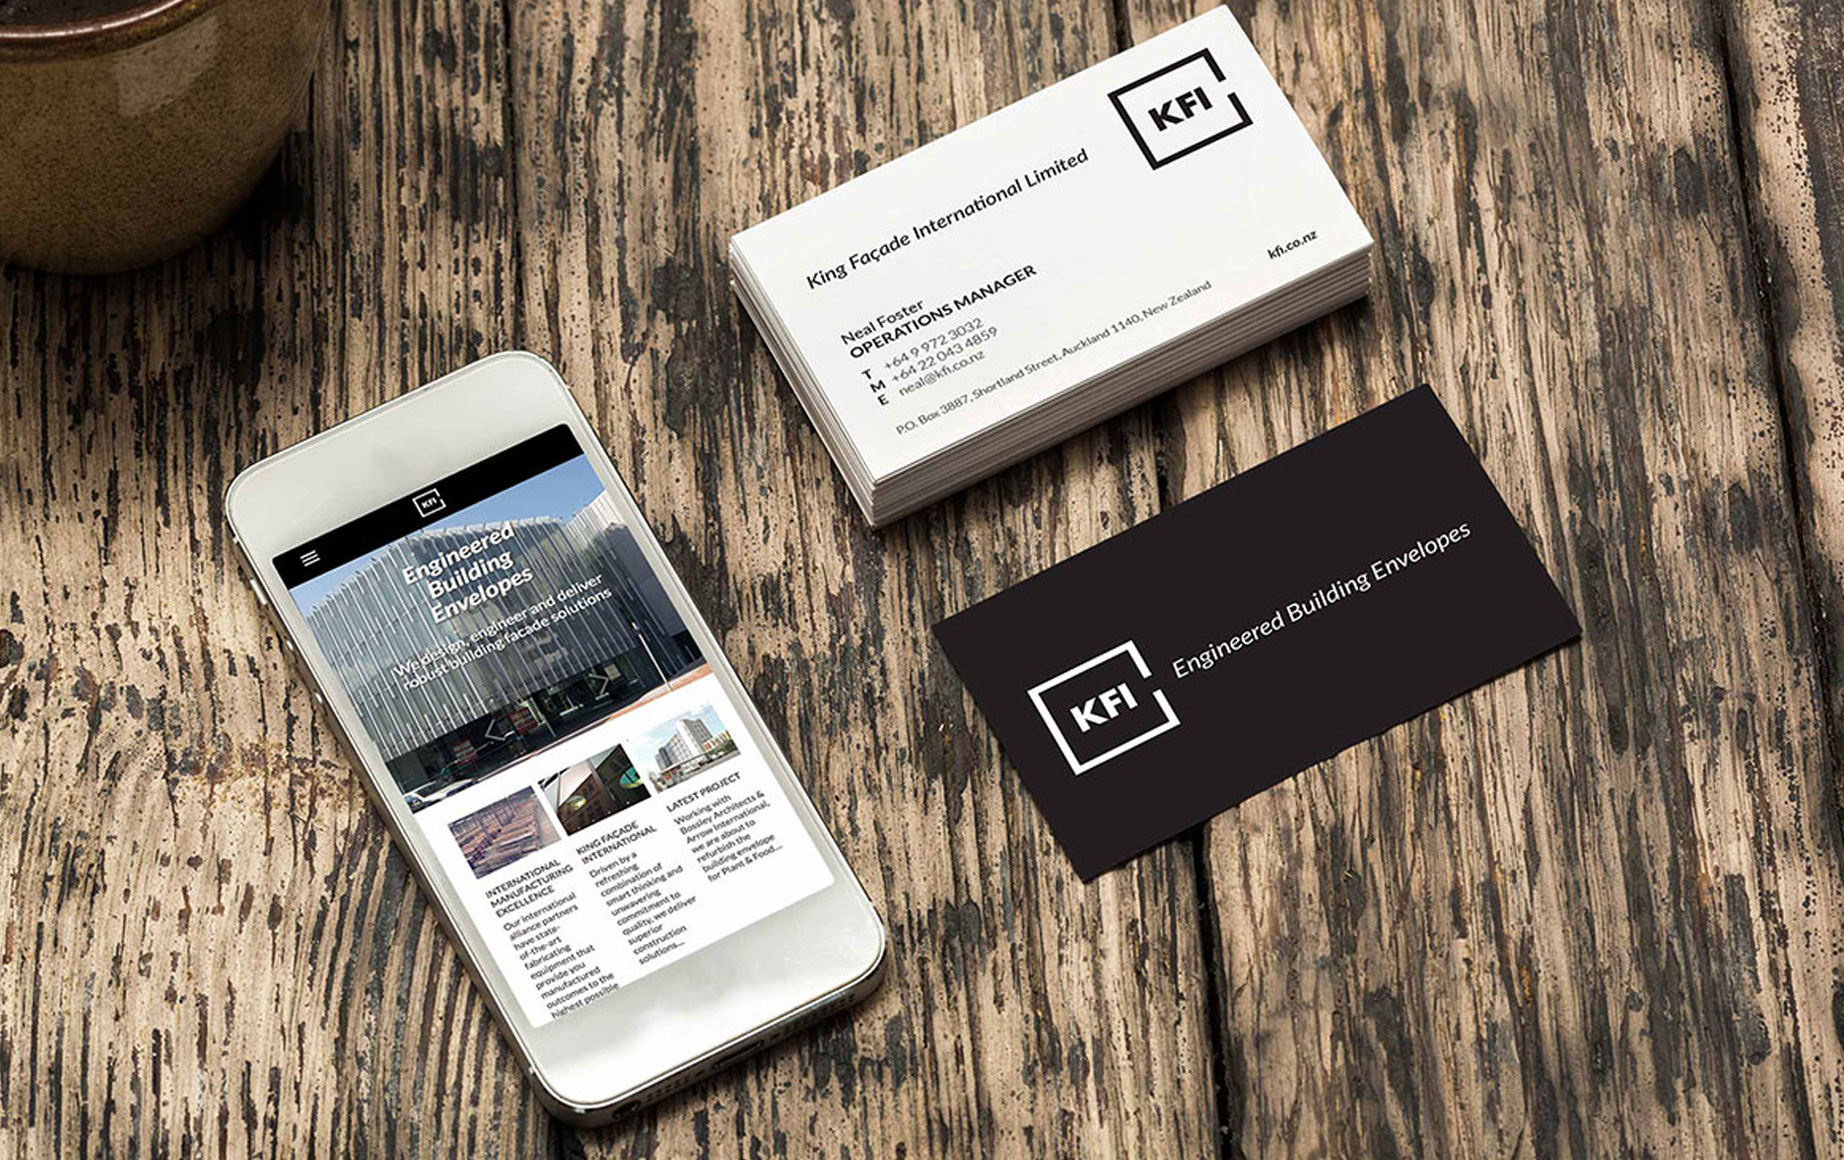 Shilton design swindon king faade international the project involved delivering new design assets for their business cards flyers letterheads signage and new website reheart Gallery